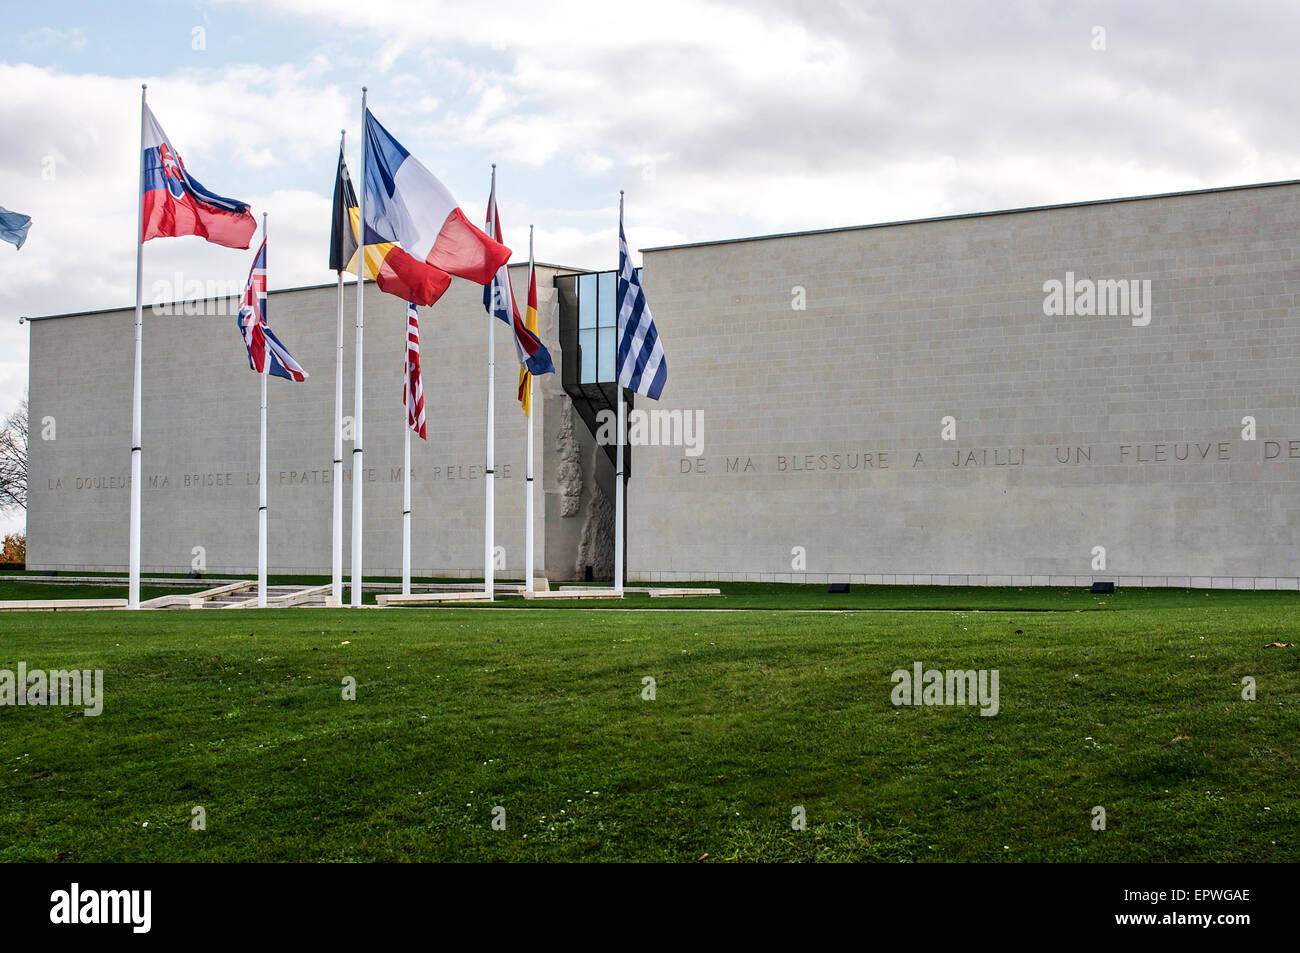 Exterior of the contemporary building housing the Caen Peace Memorial war museum in Caen, Normandy, France. - Stock Image